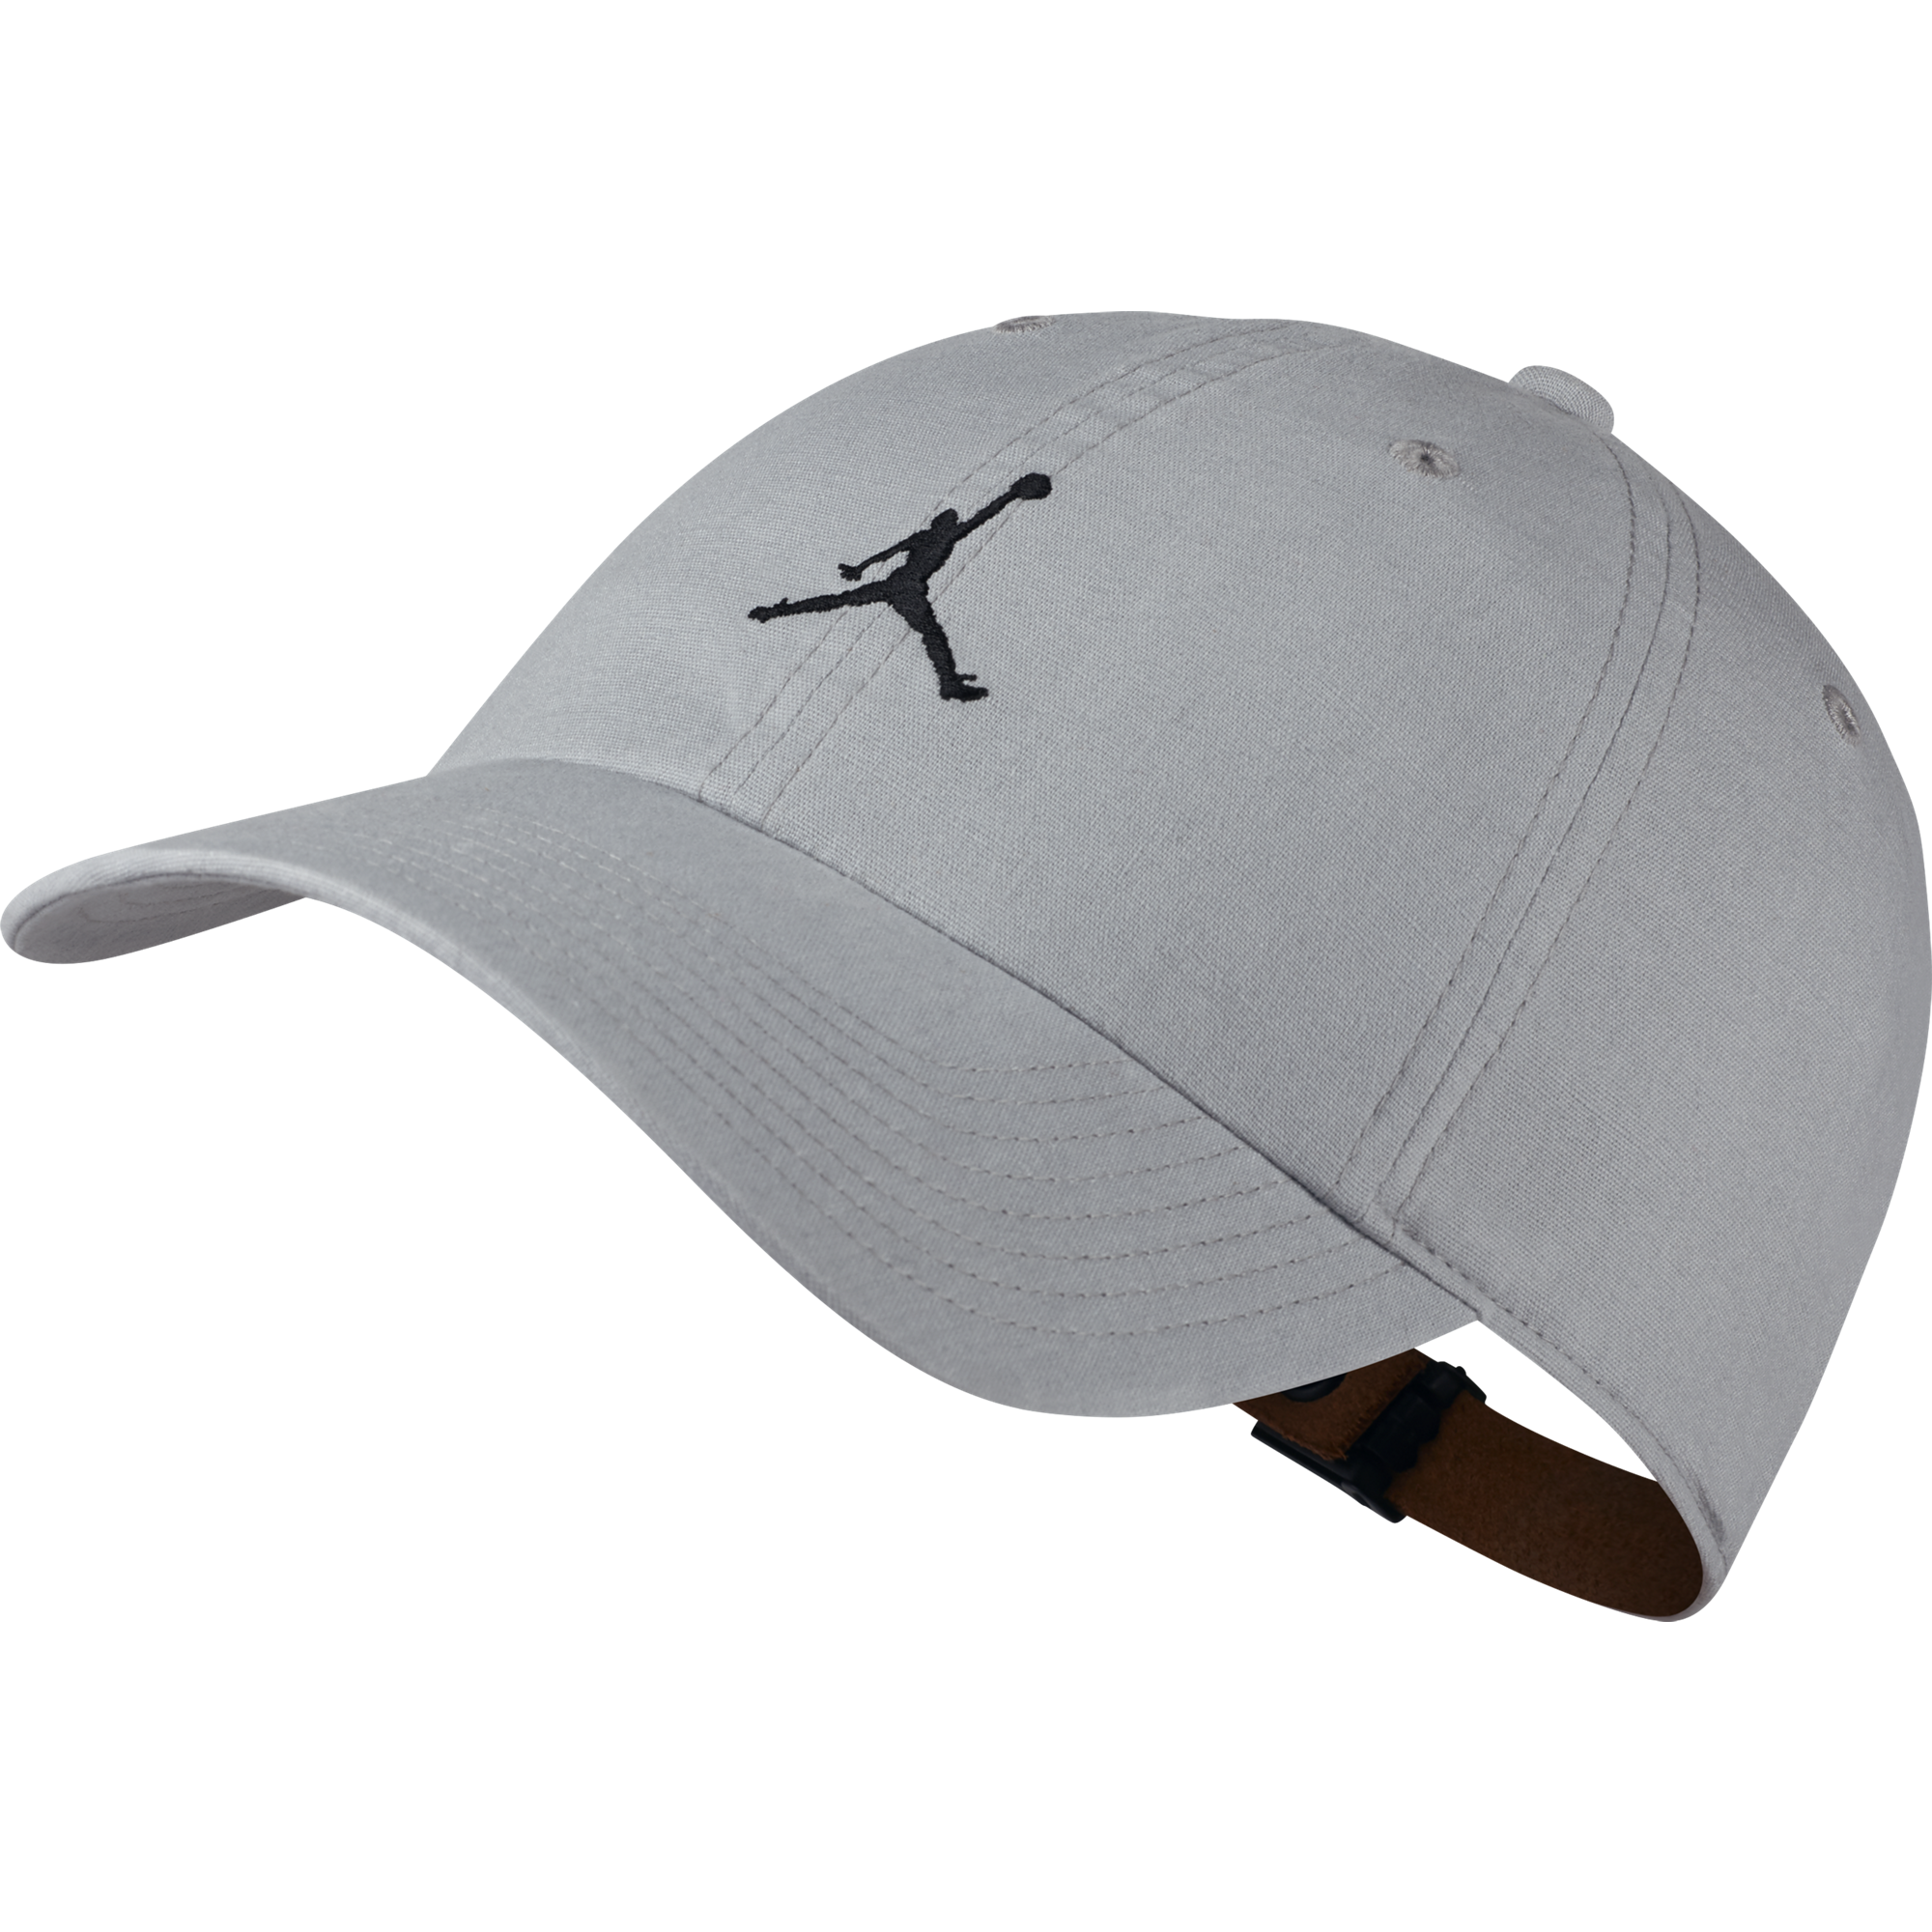 f9761a913f8e35 AIR JORDAN HERITAGE H86 JUMPMAN WASHED HAT for £25.00